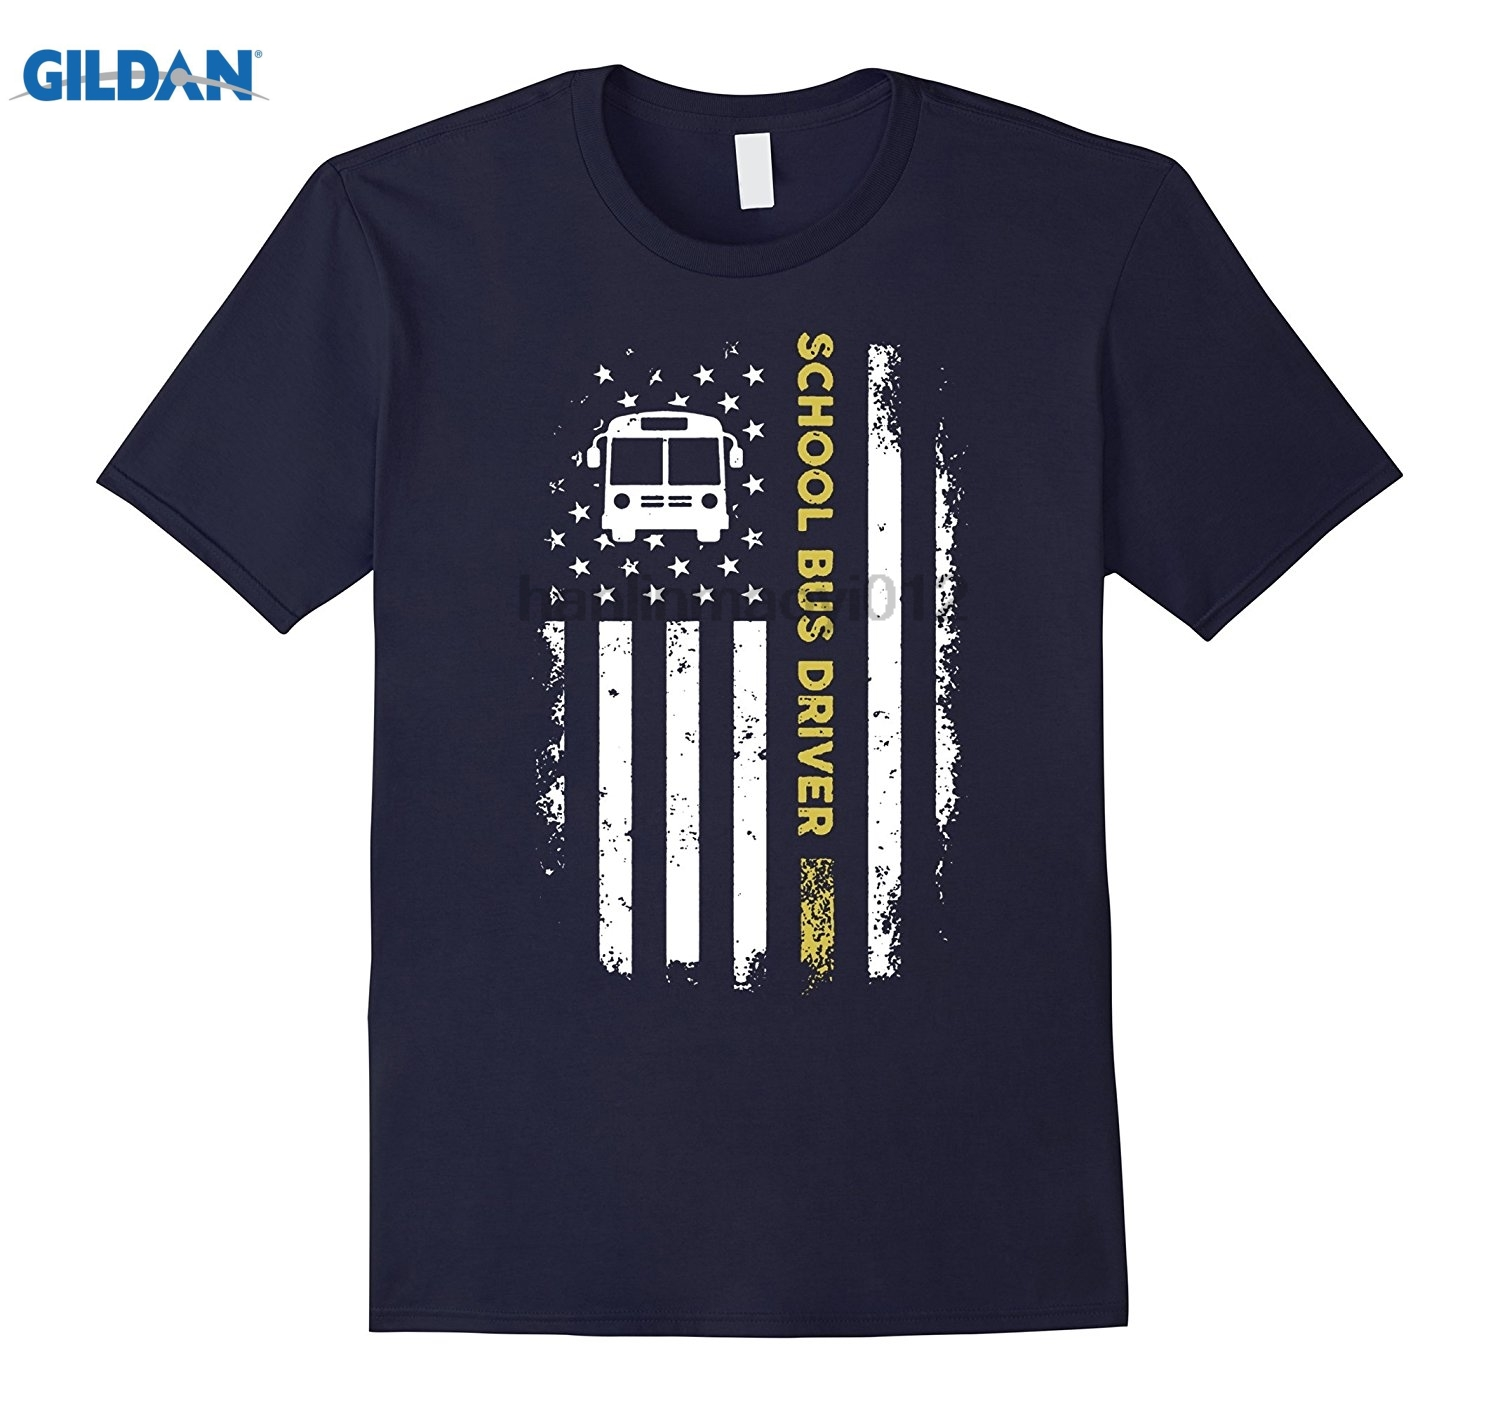 GILDAN SCHOOL BUS DRIVER USA FLAG T-SHIRT Dress female T-shirt